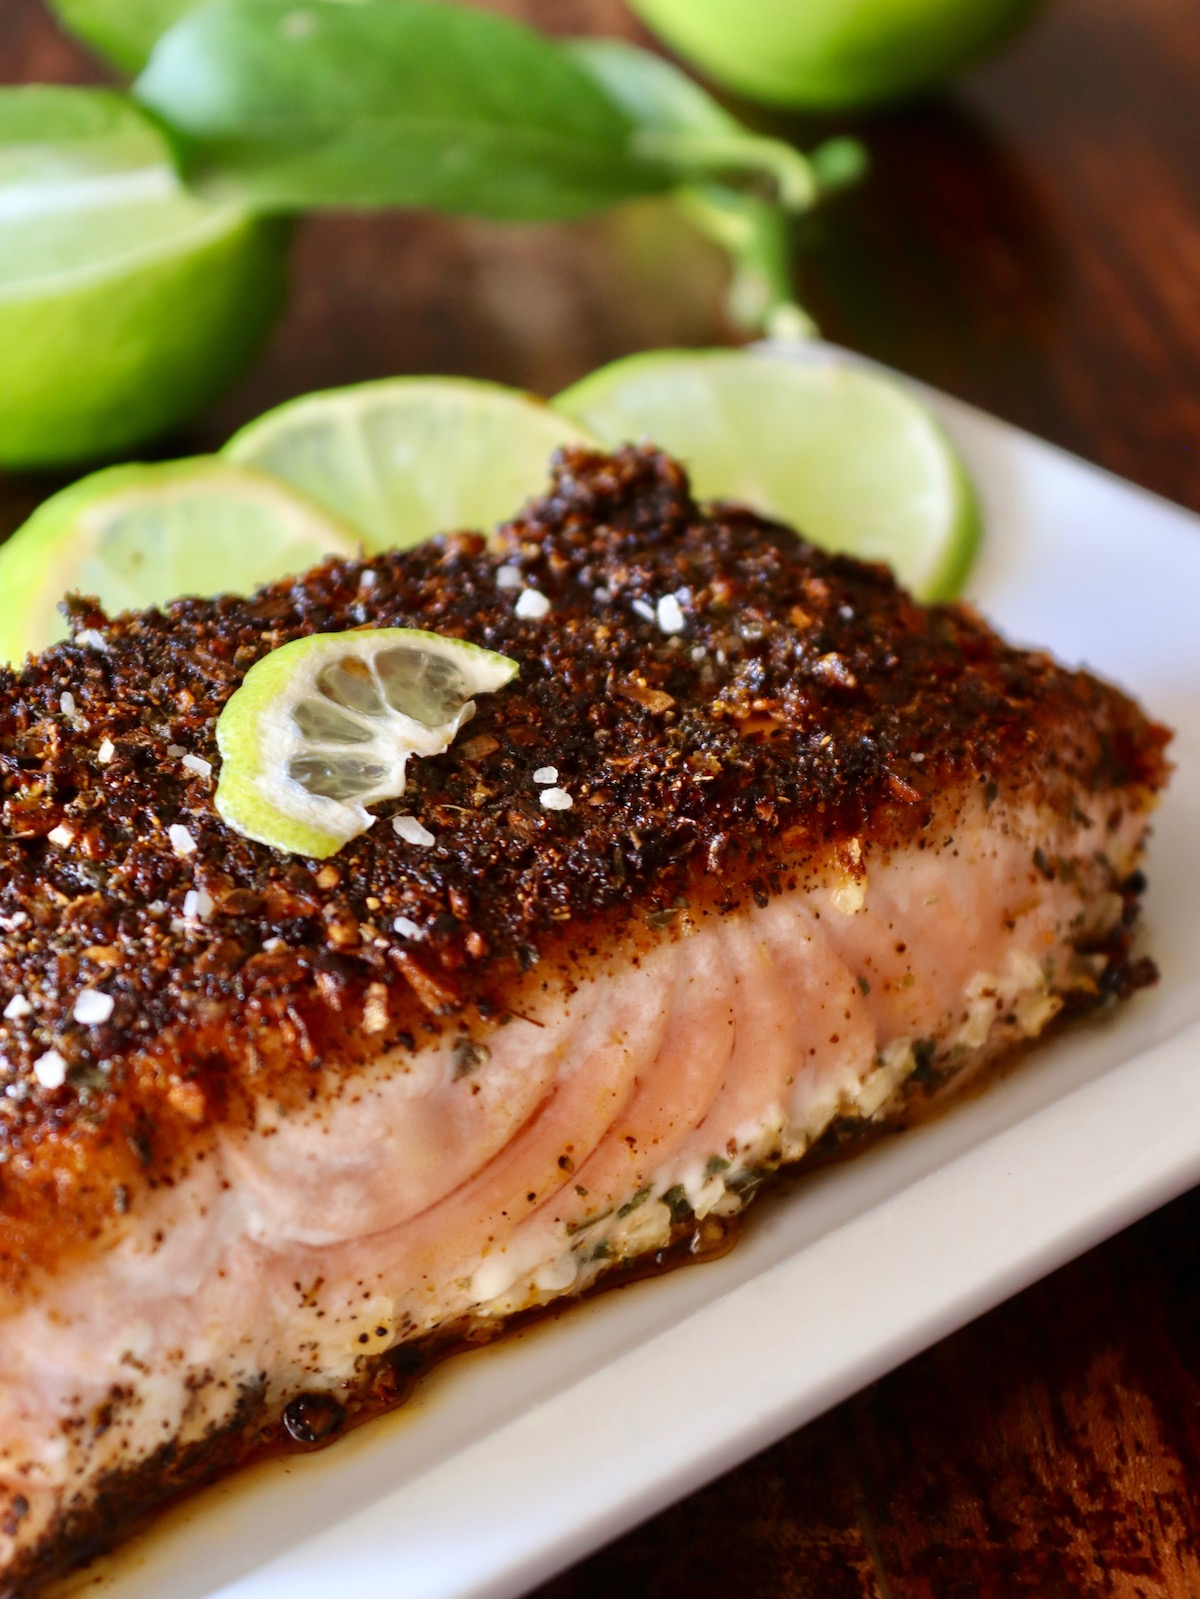 On a light wooden table, a top view of one fillet of Blackened Mexican Salmon on a narrow white plate with lime slices